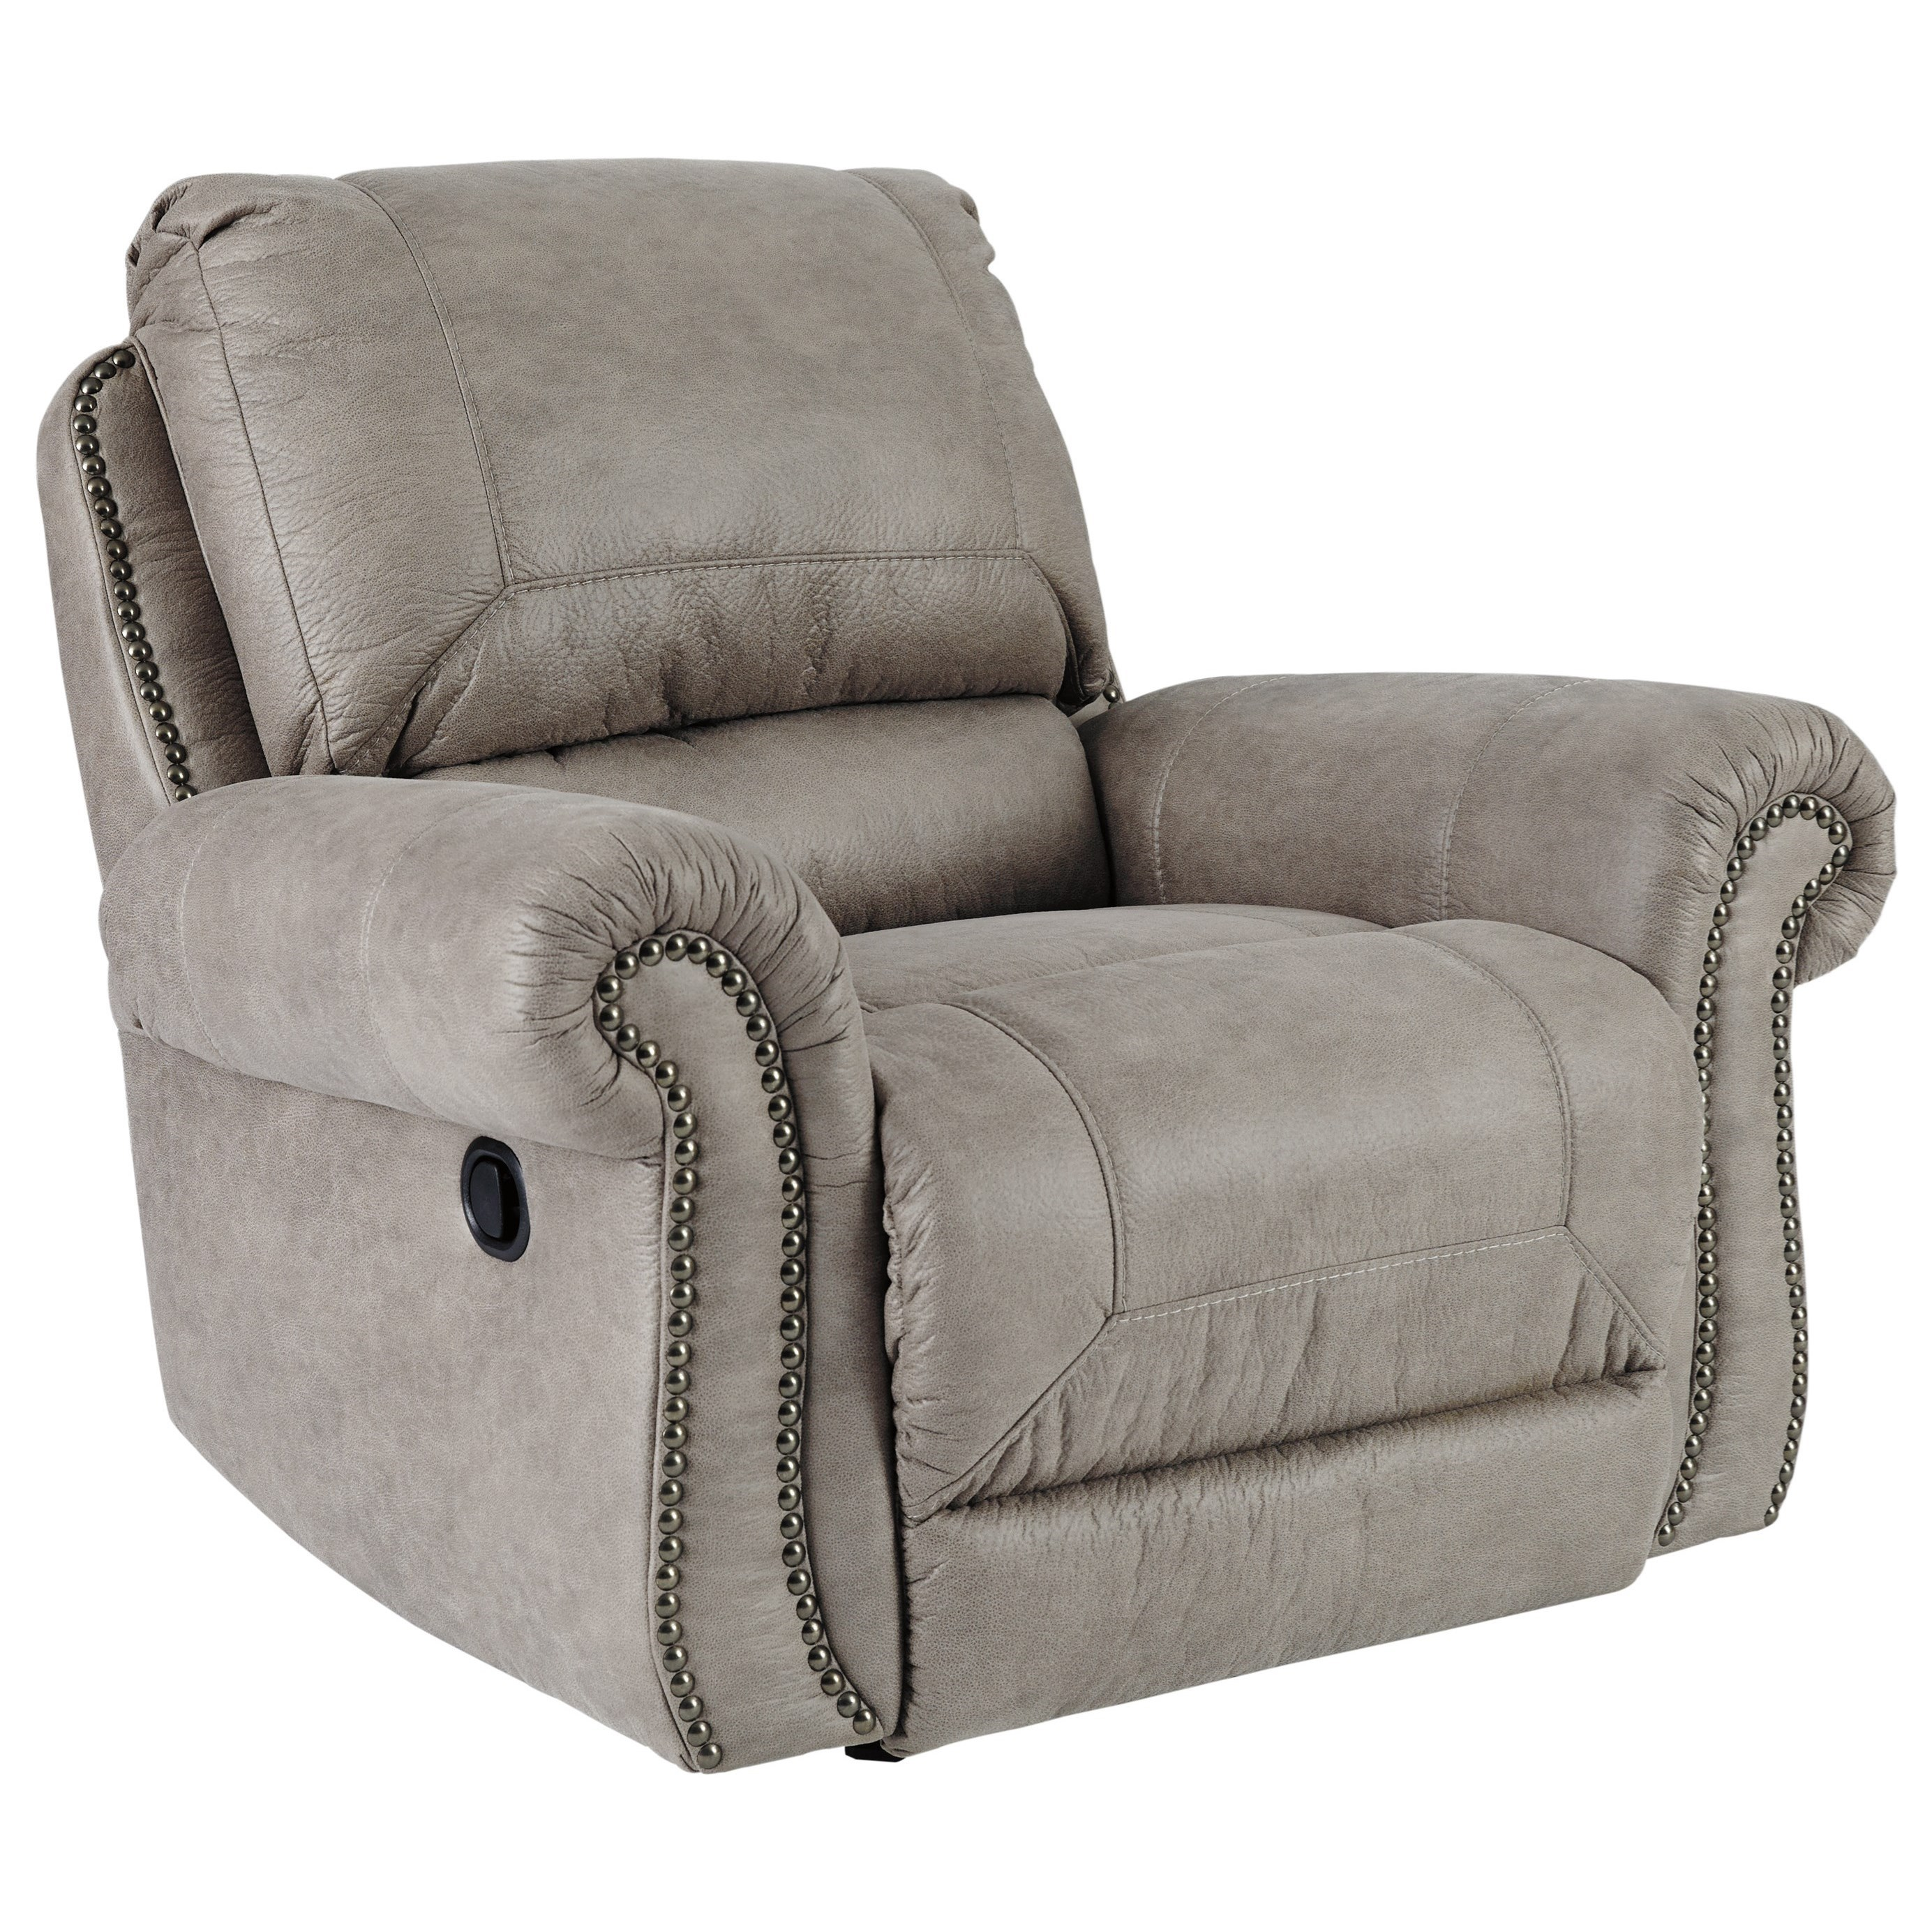 Olsberg Rocker Recliner by Signature Design by Ashley at Beck's Furniture